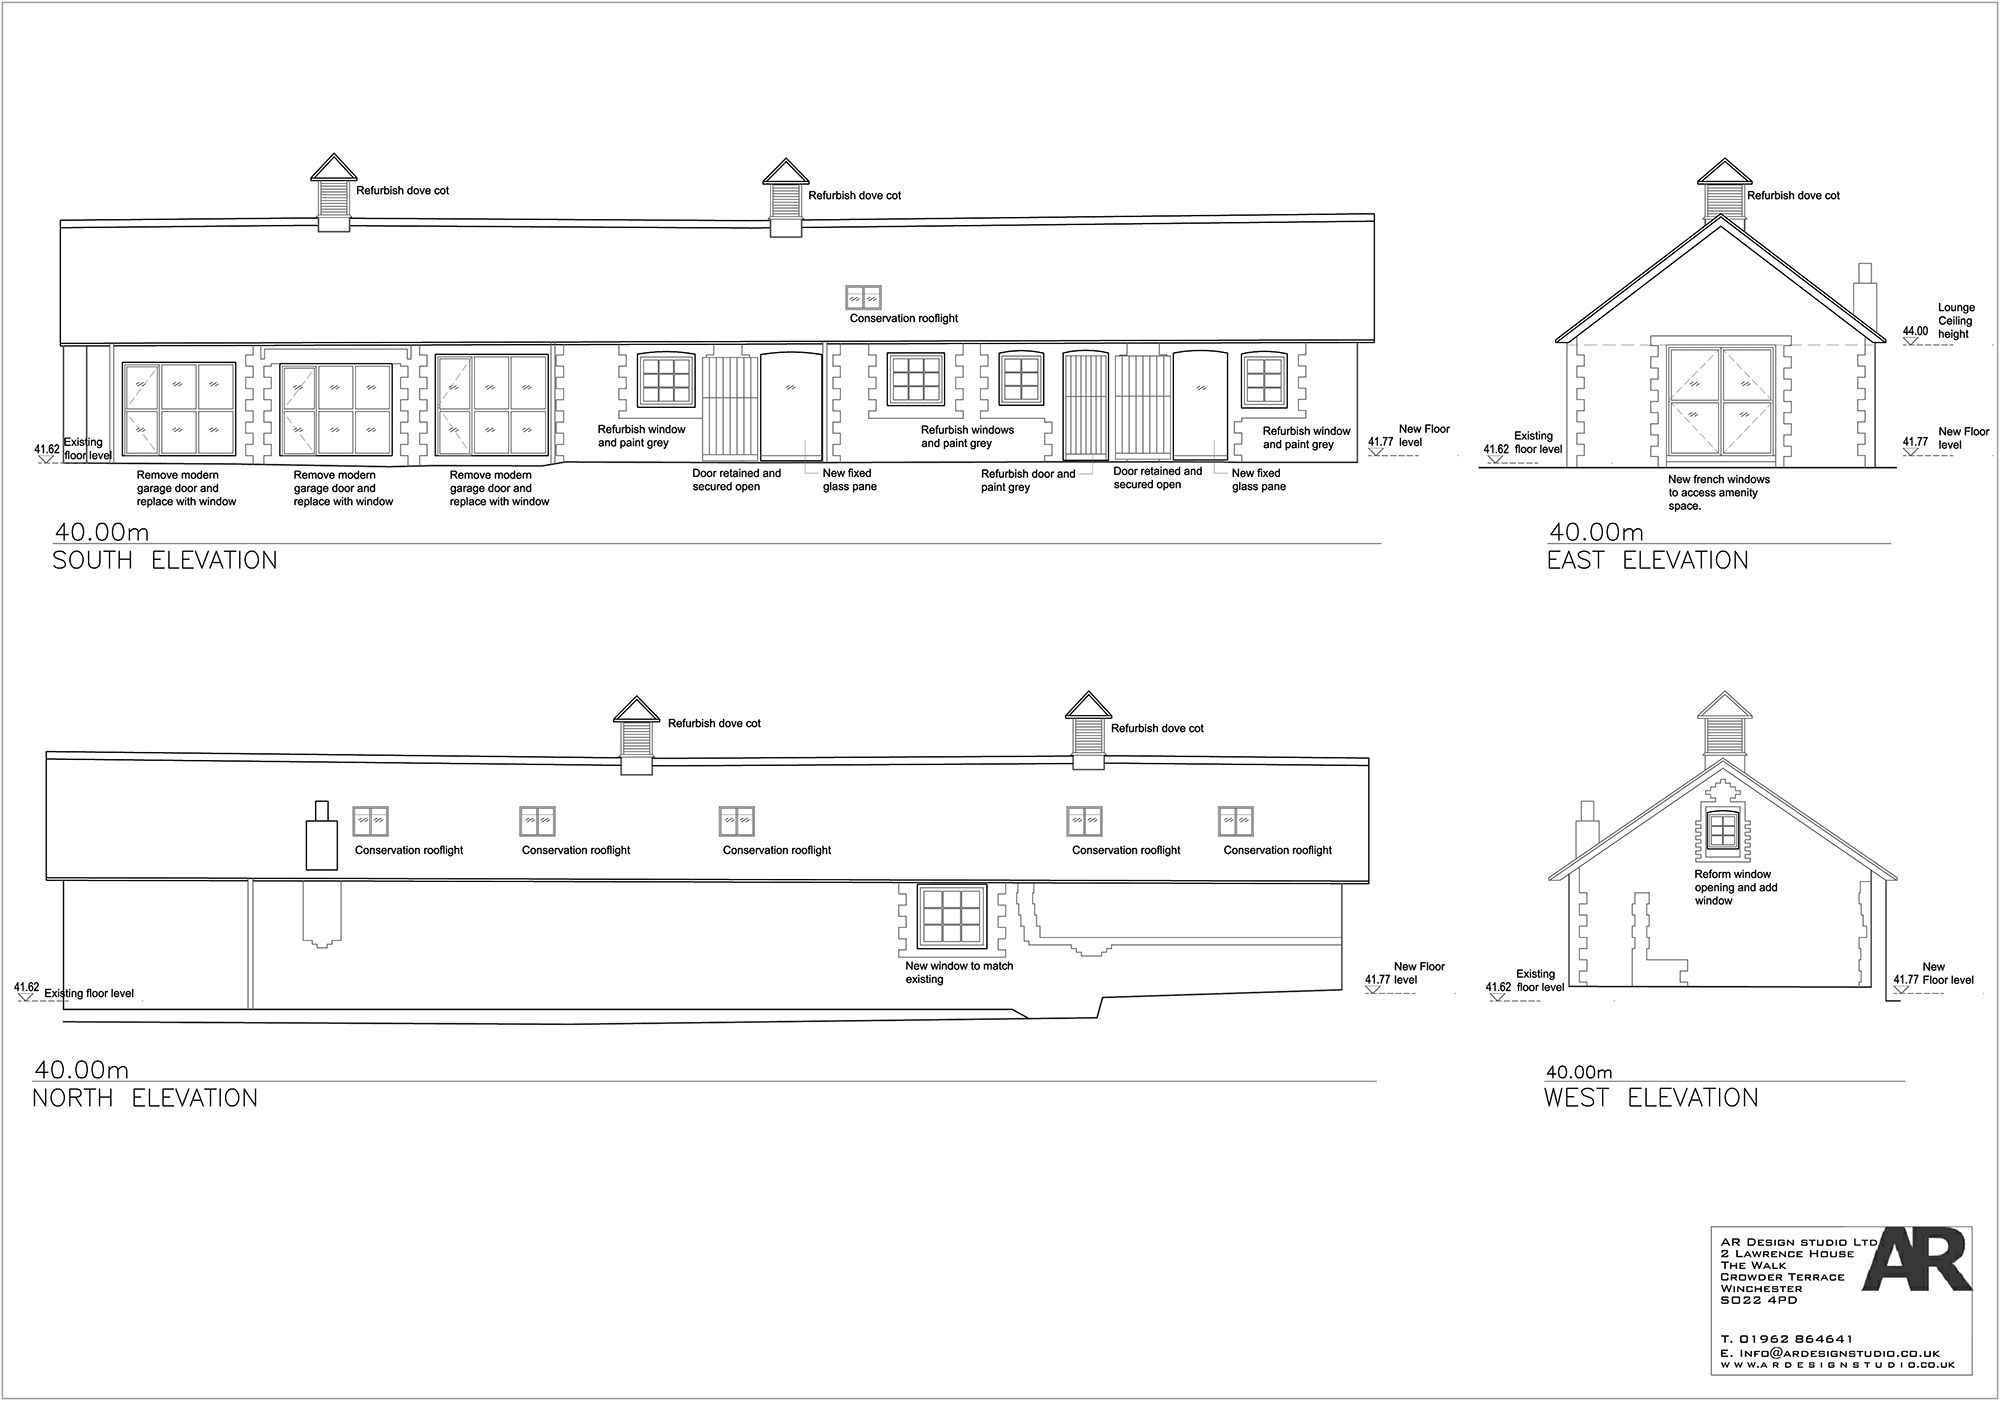 Z:PROJECTS267 The Manor House305 StableDrawingsArchivePl